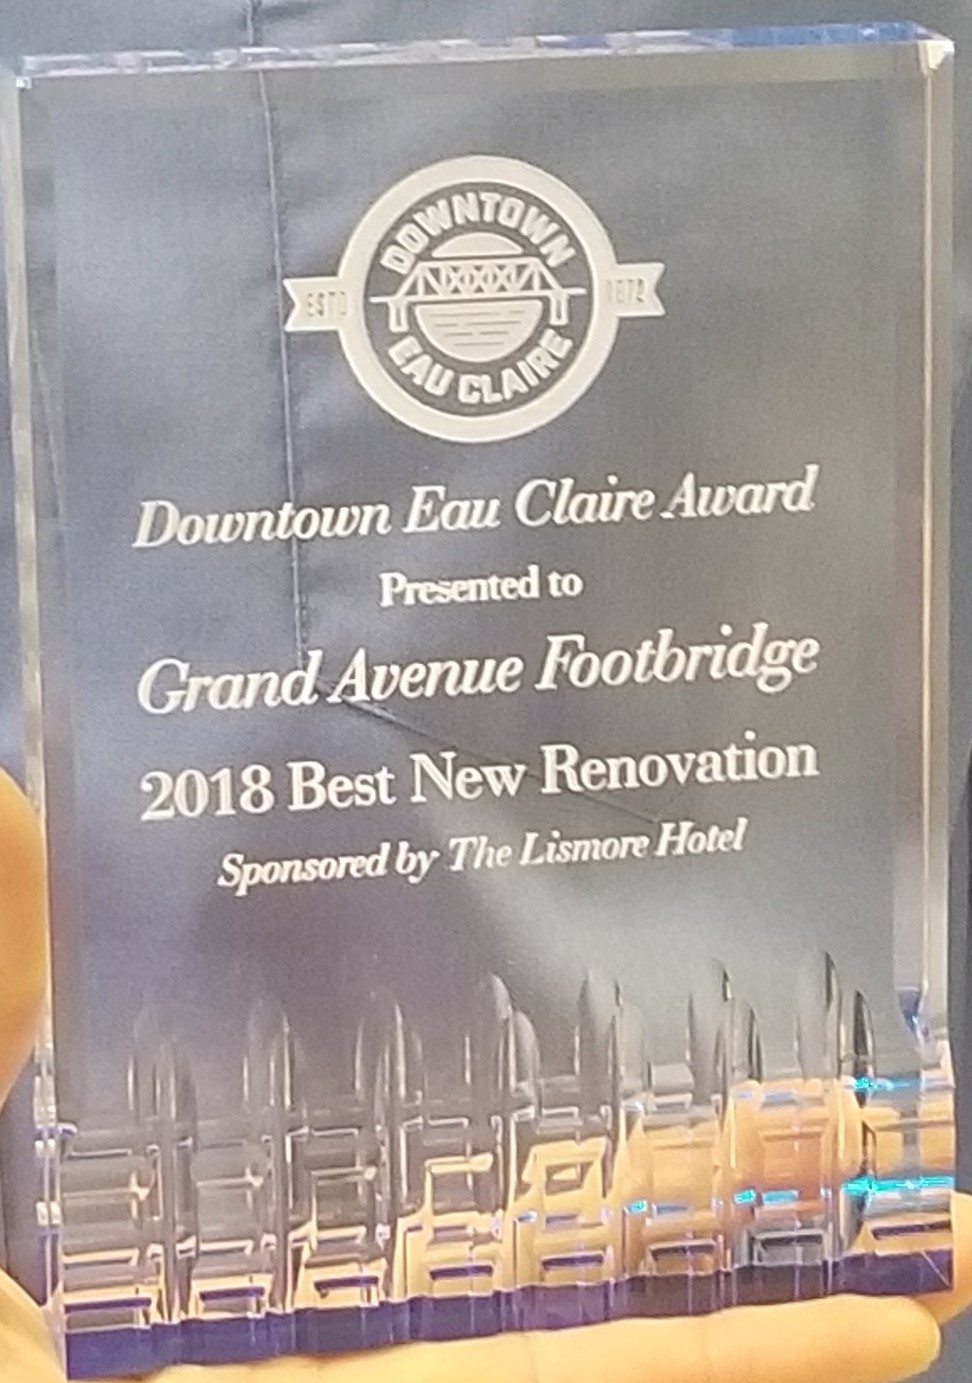 Downtown Eau Claire Downtown Eau Claire Award Presented to Grand Avenue Footbridge 2018 Best New Renovation Sponsored by The Lismore Hotel